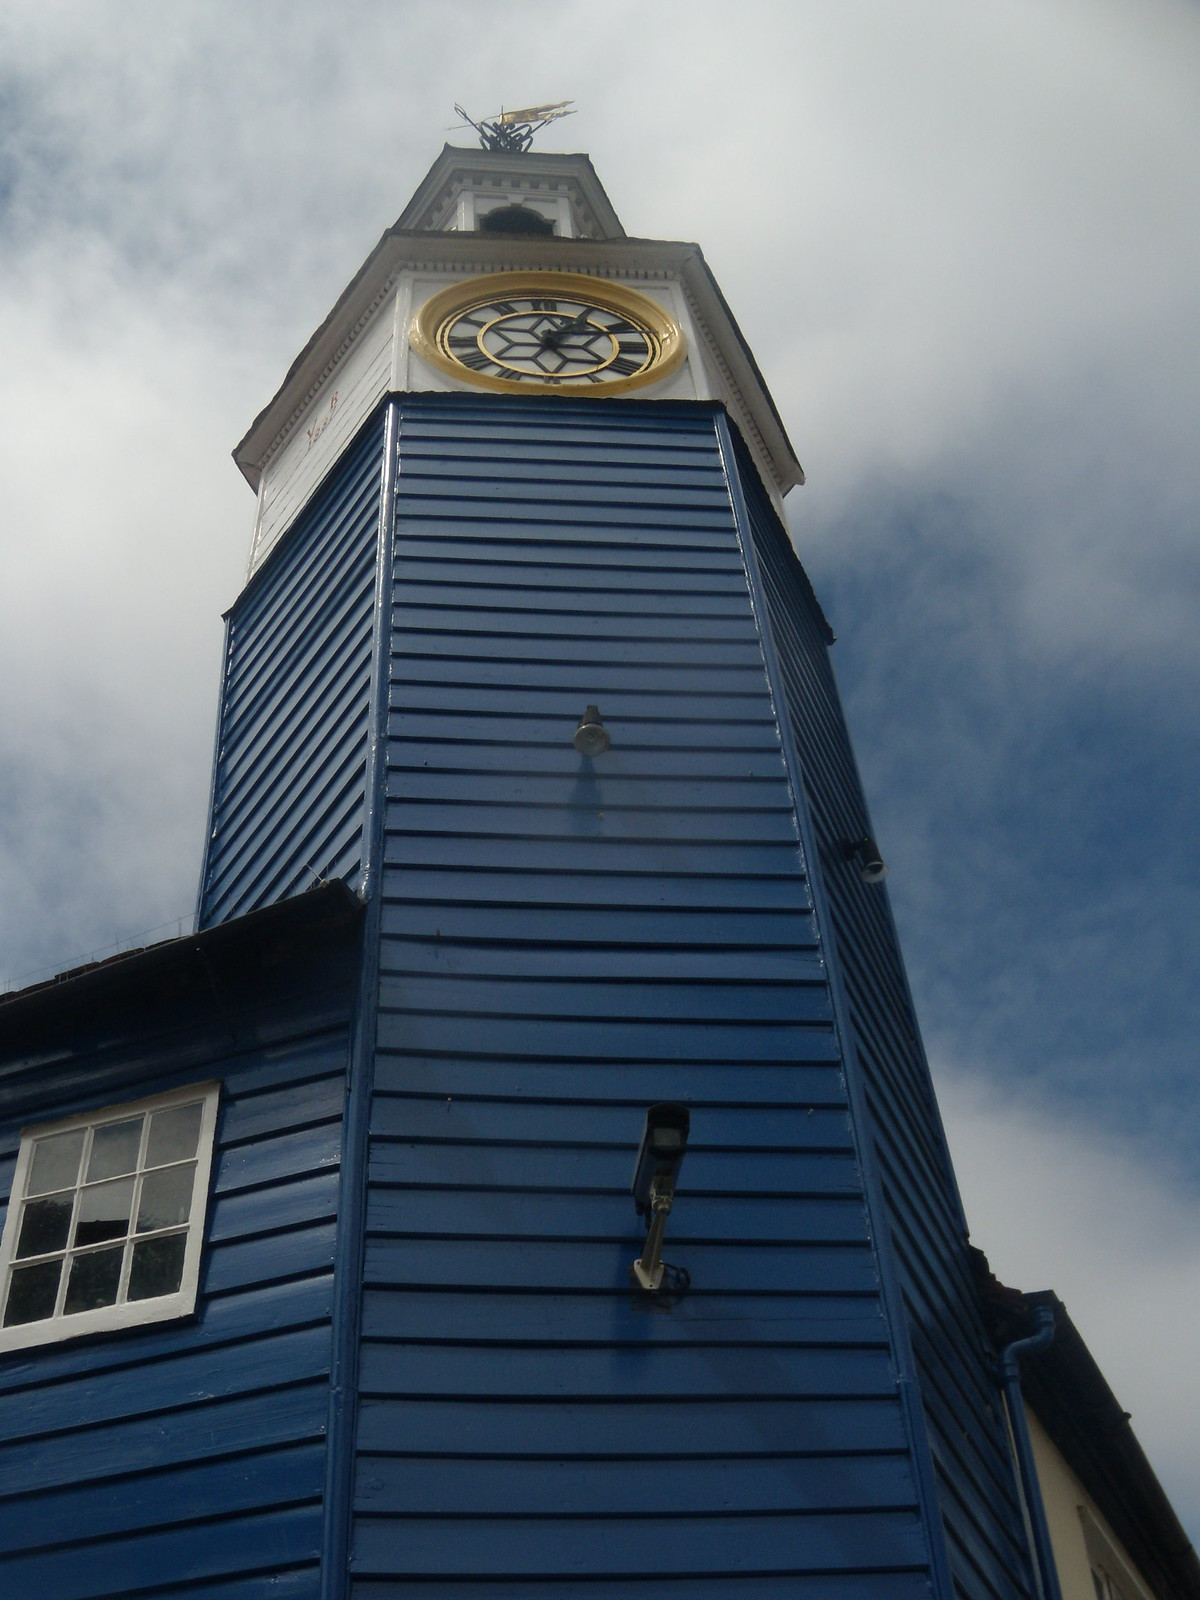 Clock tower Coggeshall Kelvedon circular